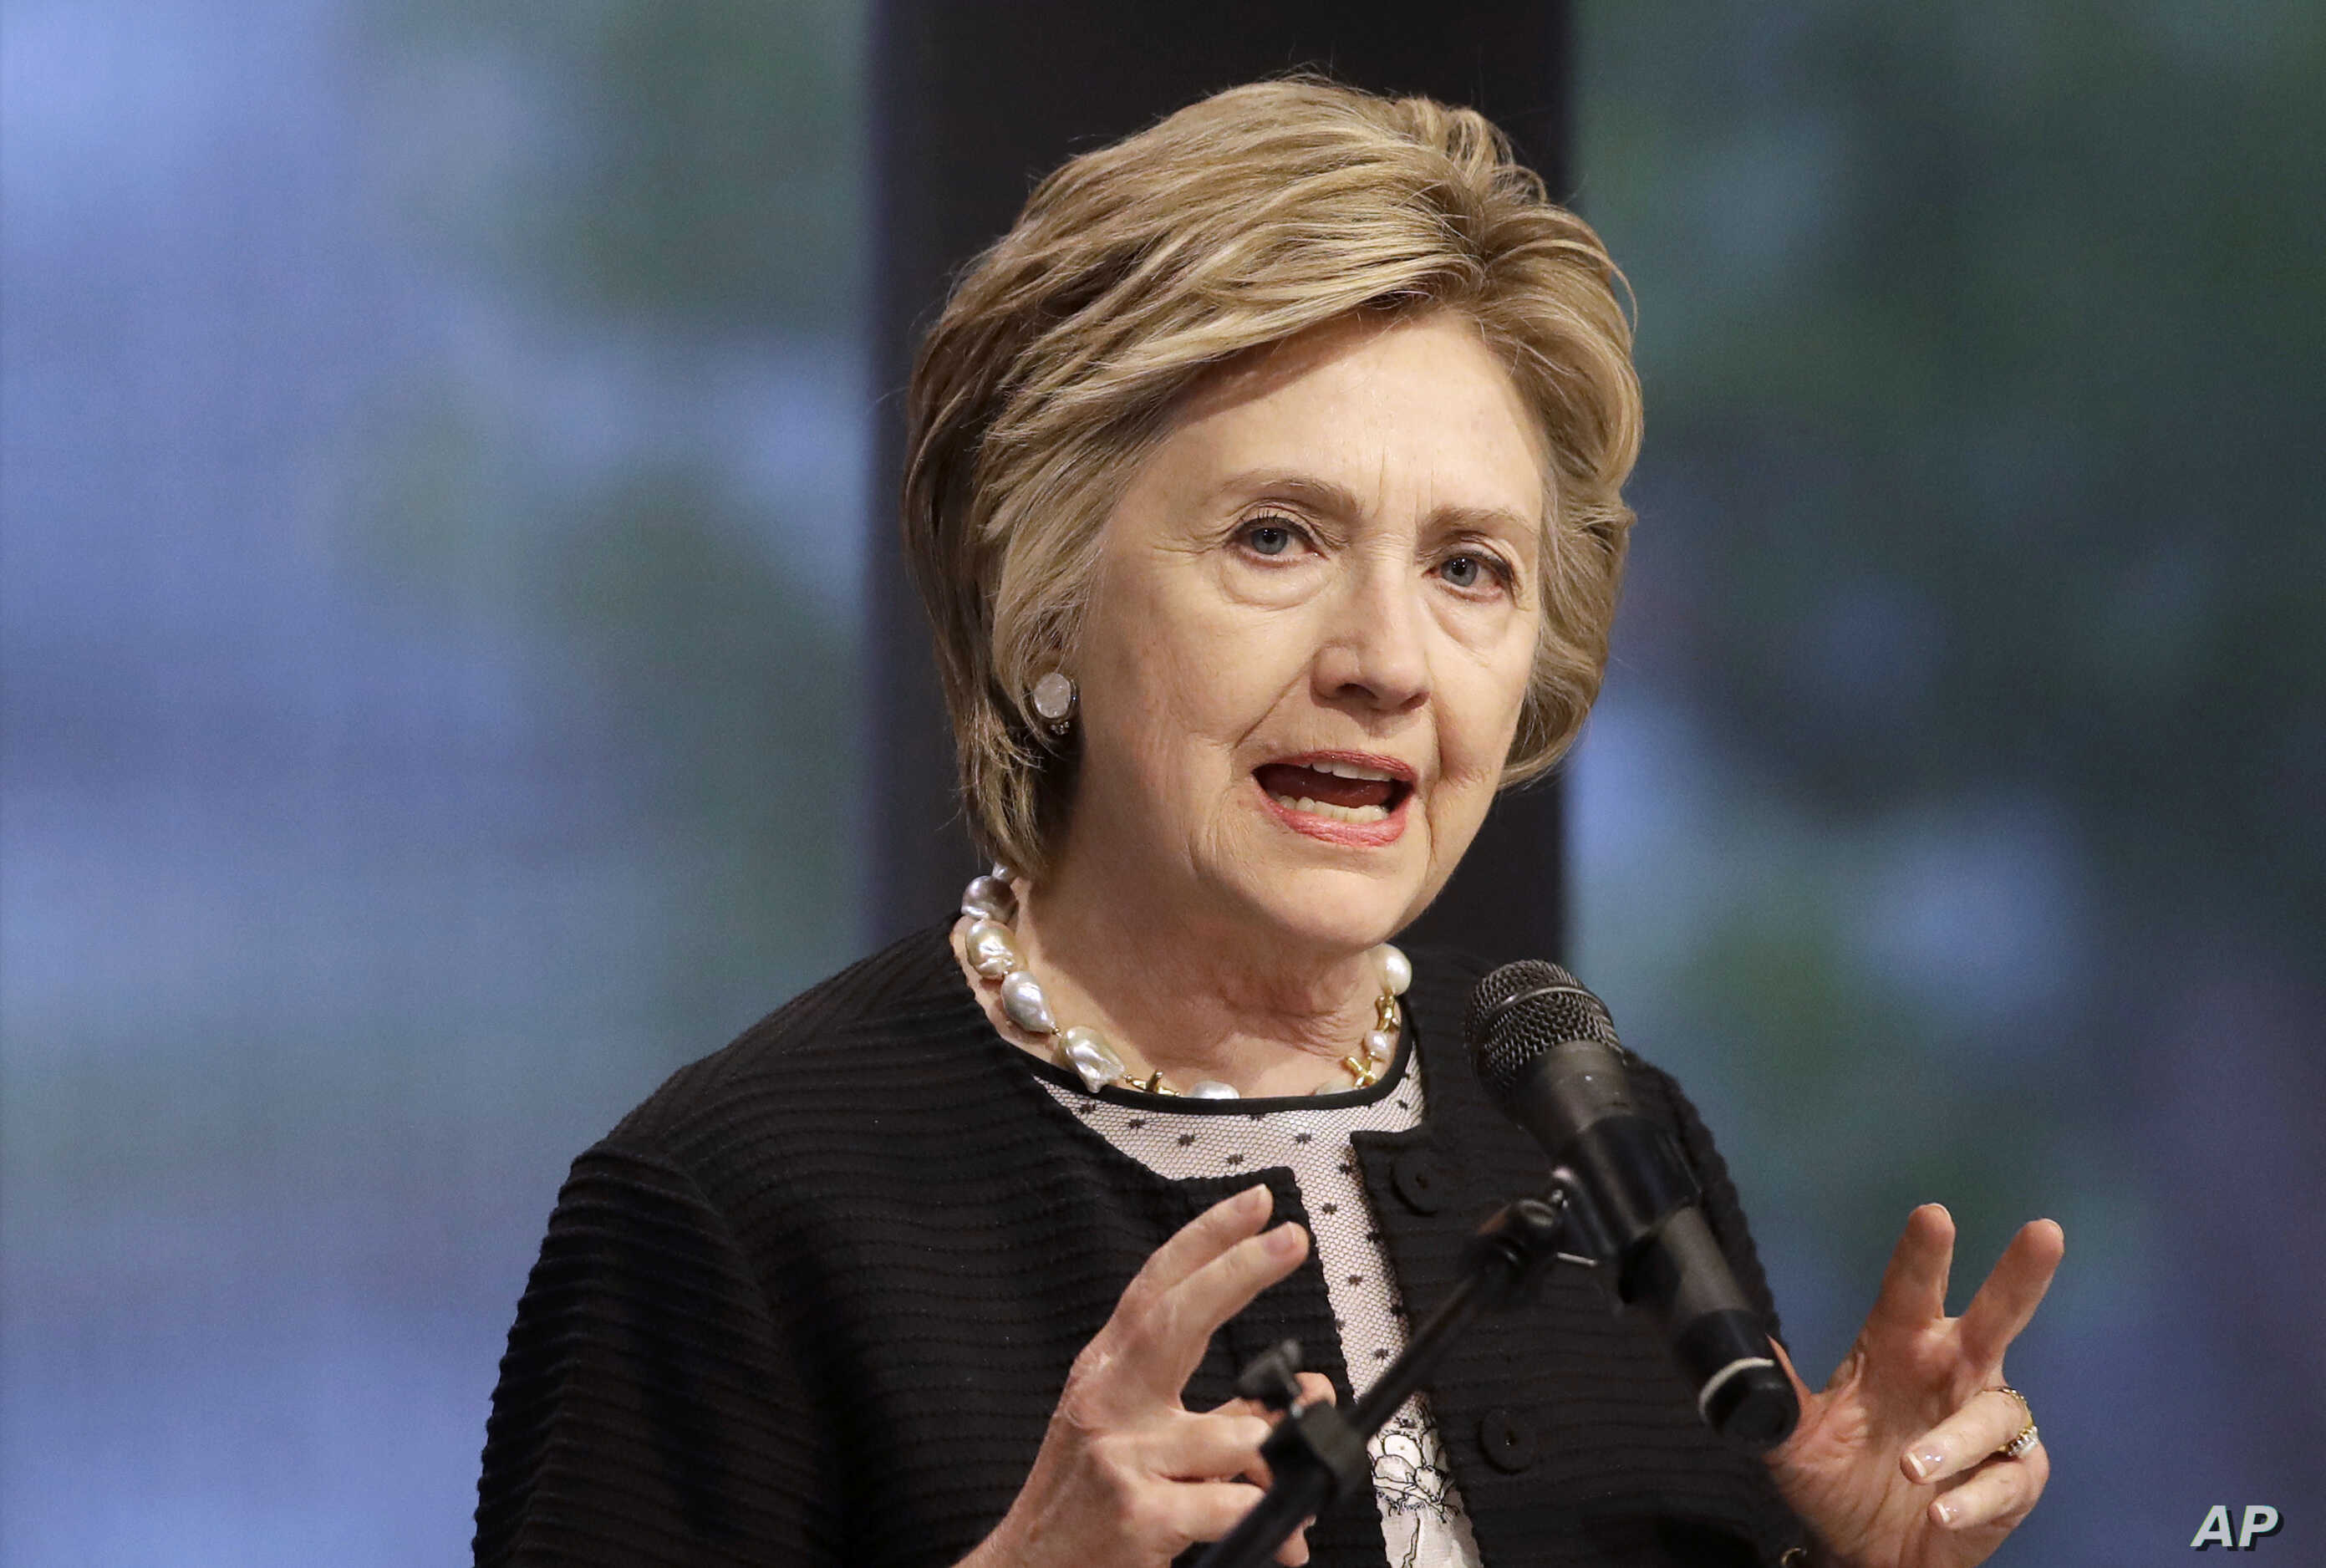 FILE - In this June 5, 2017 file photo, former Secretary of State Hillary Clinton speaks in Baltimore.